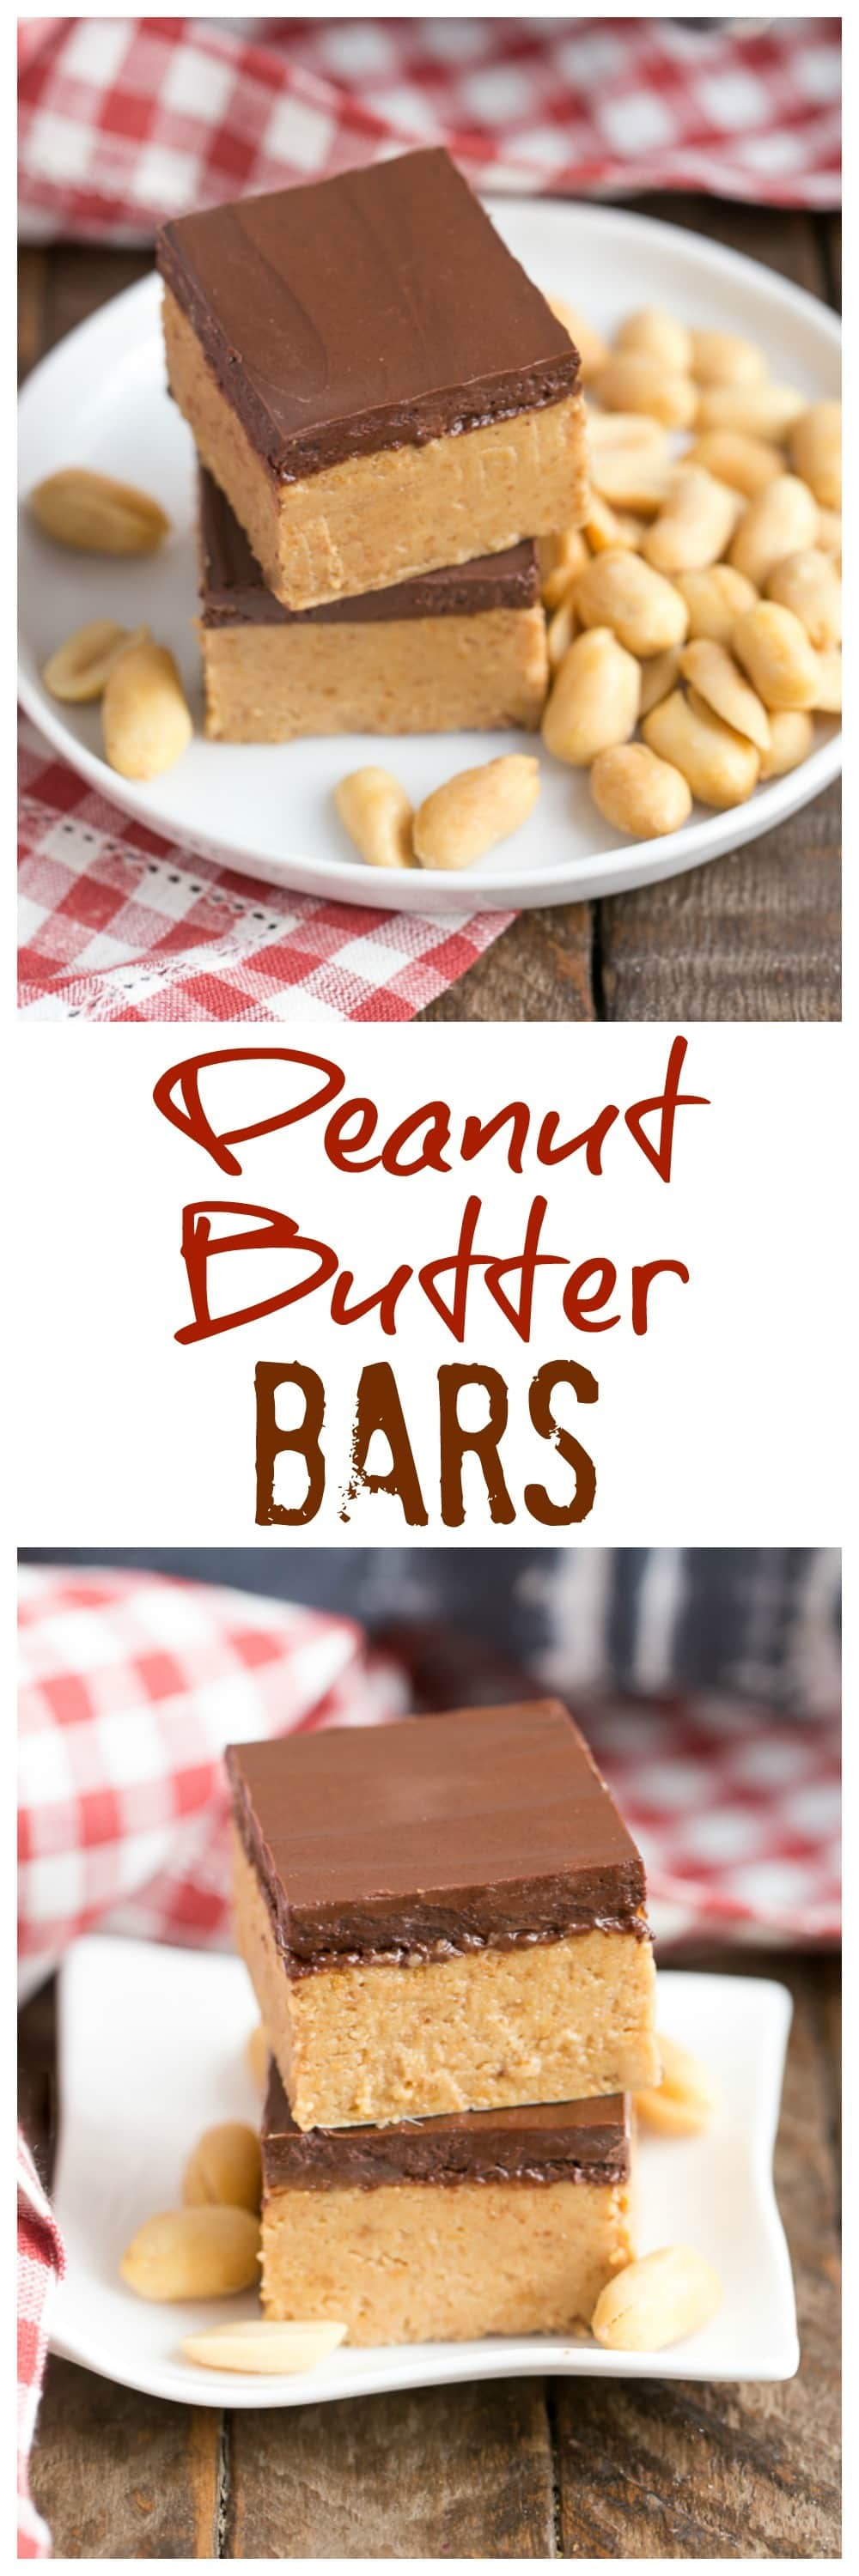 Better Than Reese S Peanut Butter Bars That Skinny Chick